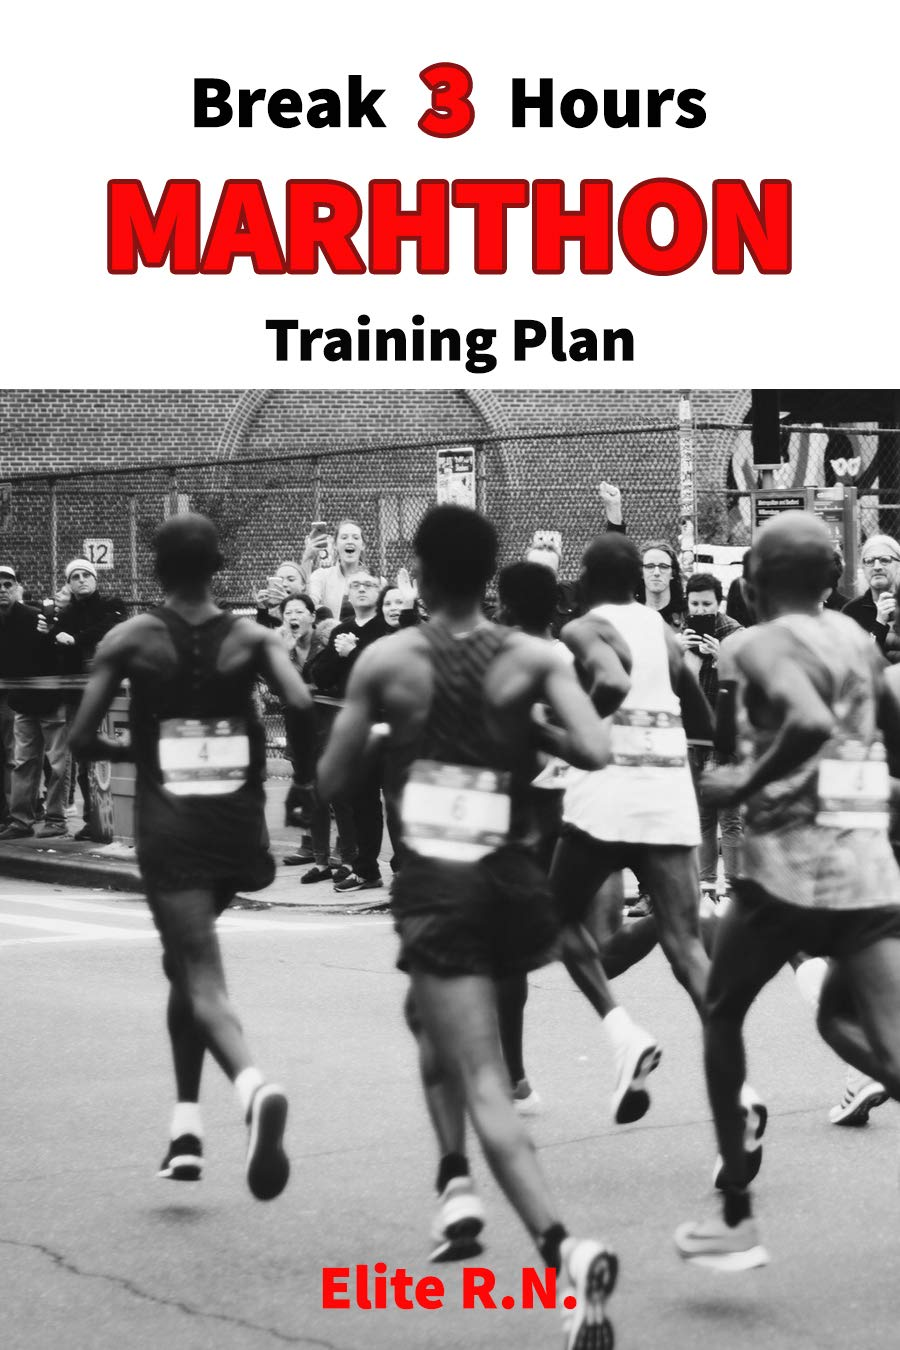 Break 3 Hour Marathon Training Plan: 16-week marathon training plan aims to get you across the line in under 3 hours.